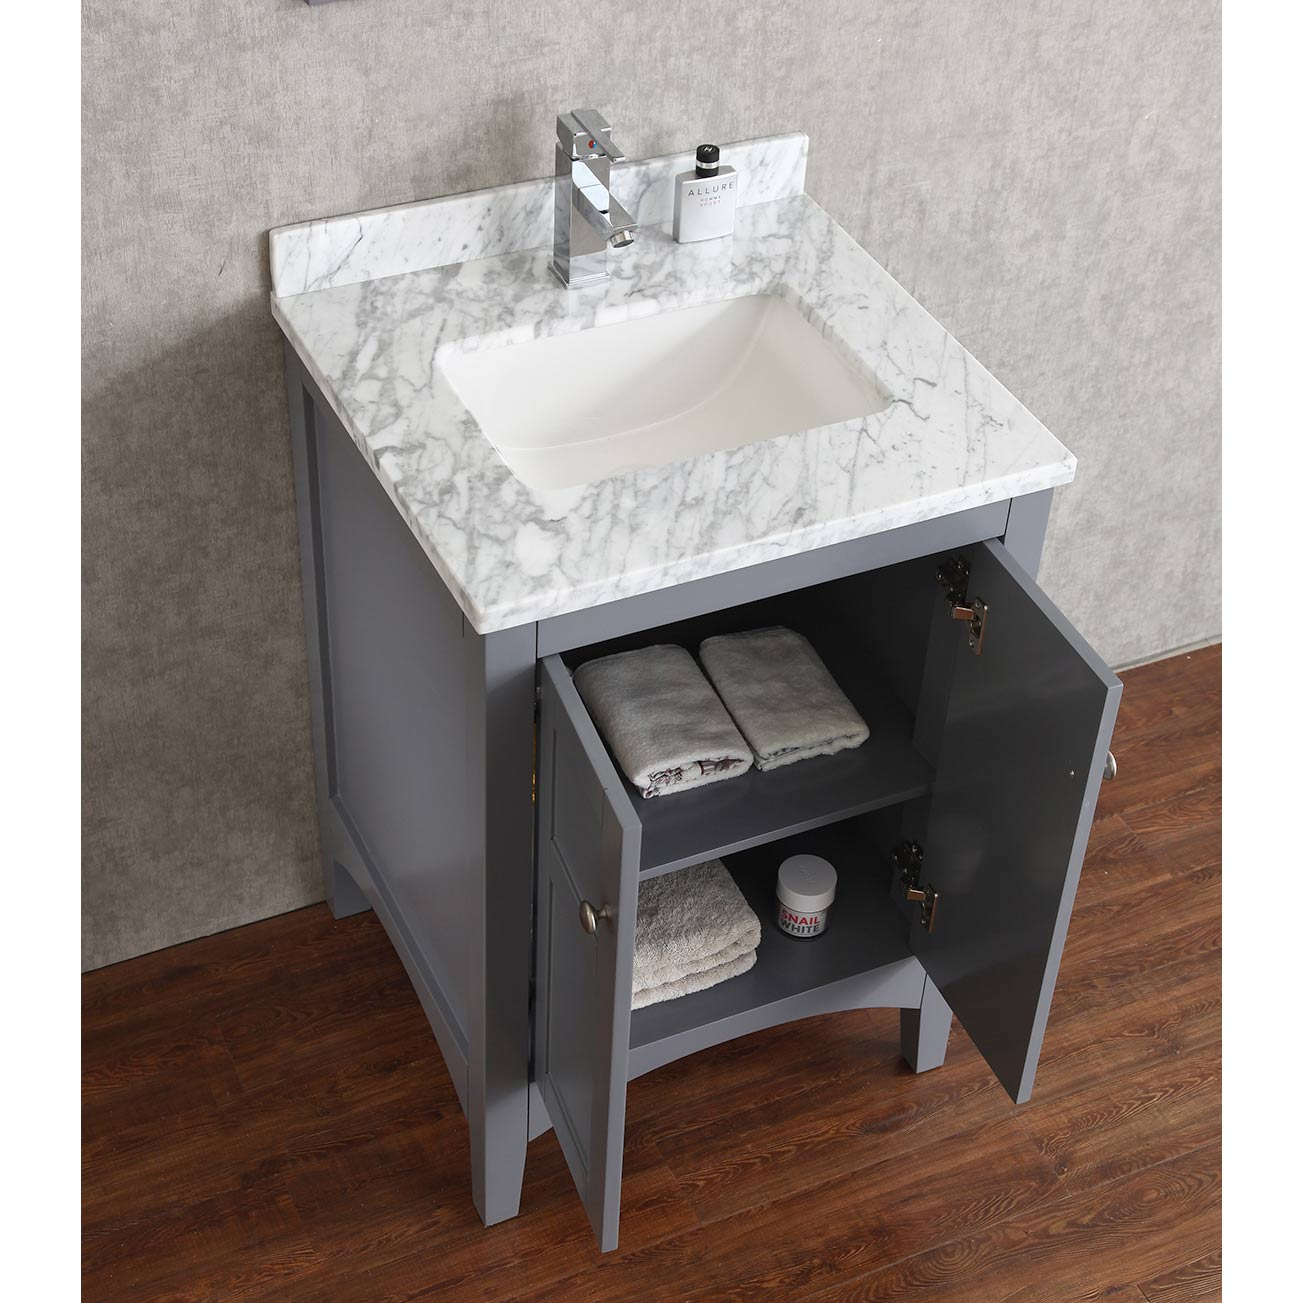 Buy Martin 24 Inch Solid Wood Single Bathroom Vanity In Charcoal Grey Hm 001 24 Wmsq Cg